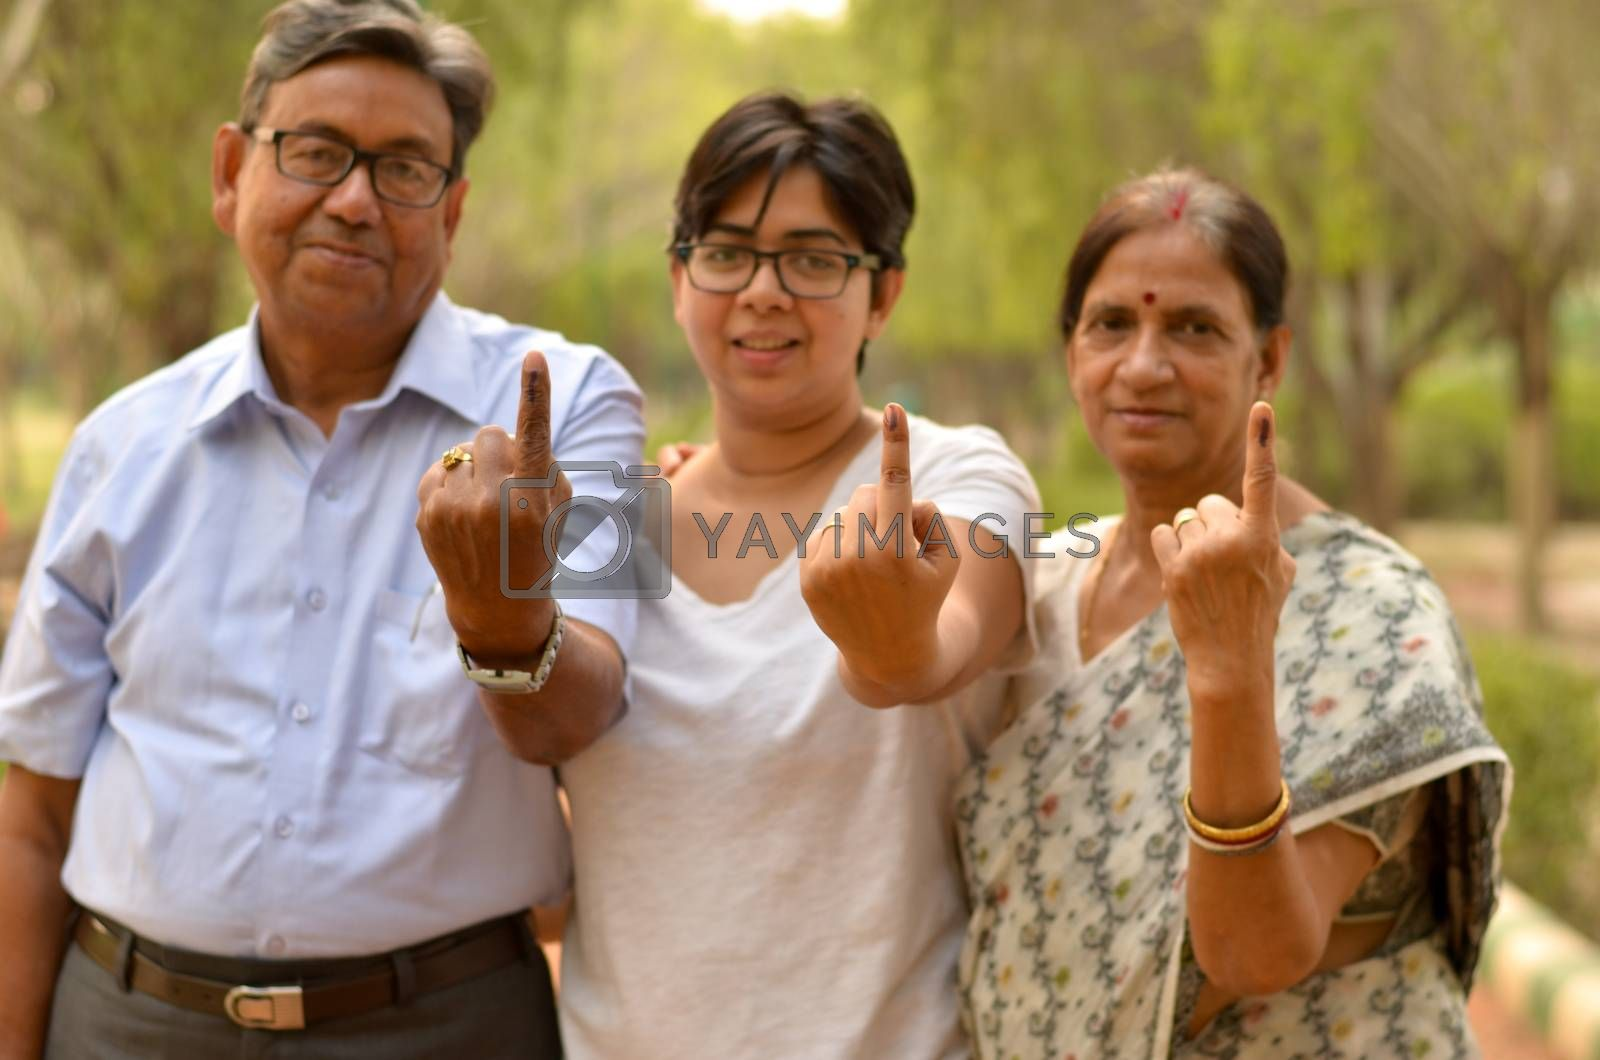 Happy Family portrait - Senior Retired parents and their daughter showing the inked finger after voting in Indian elections in an outdoor park. Celebrating world's largest democratic elections concept